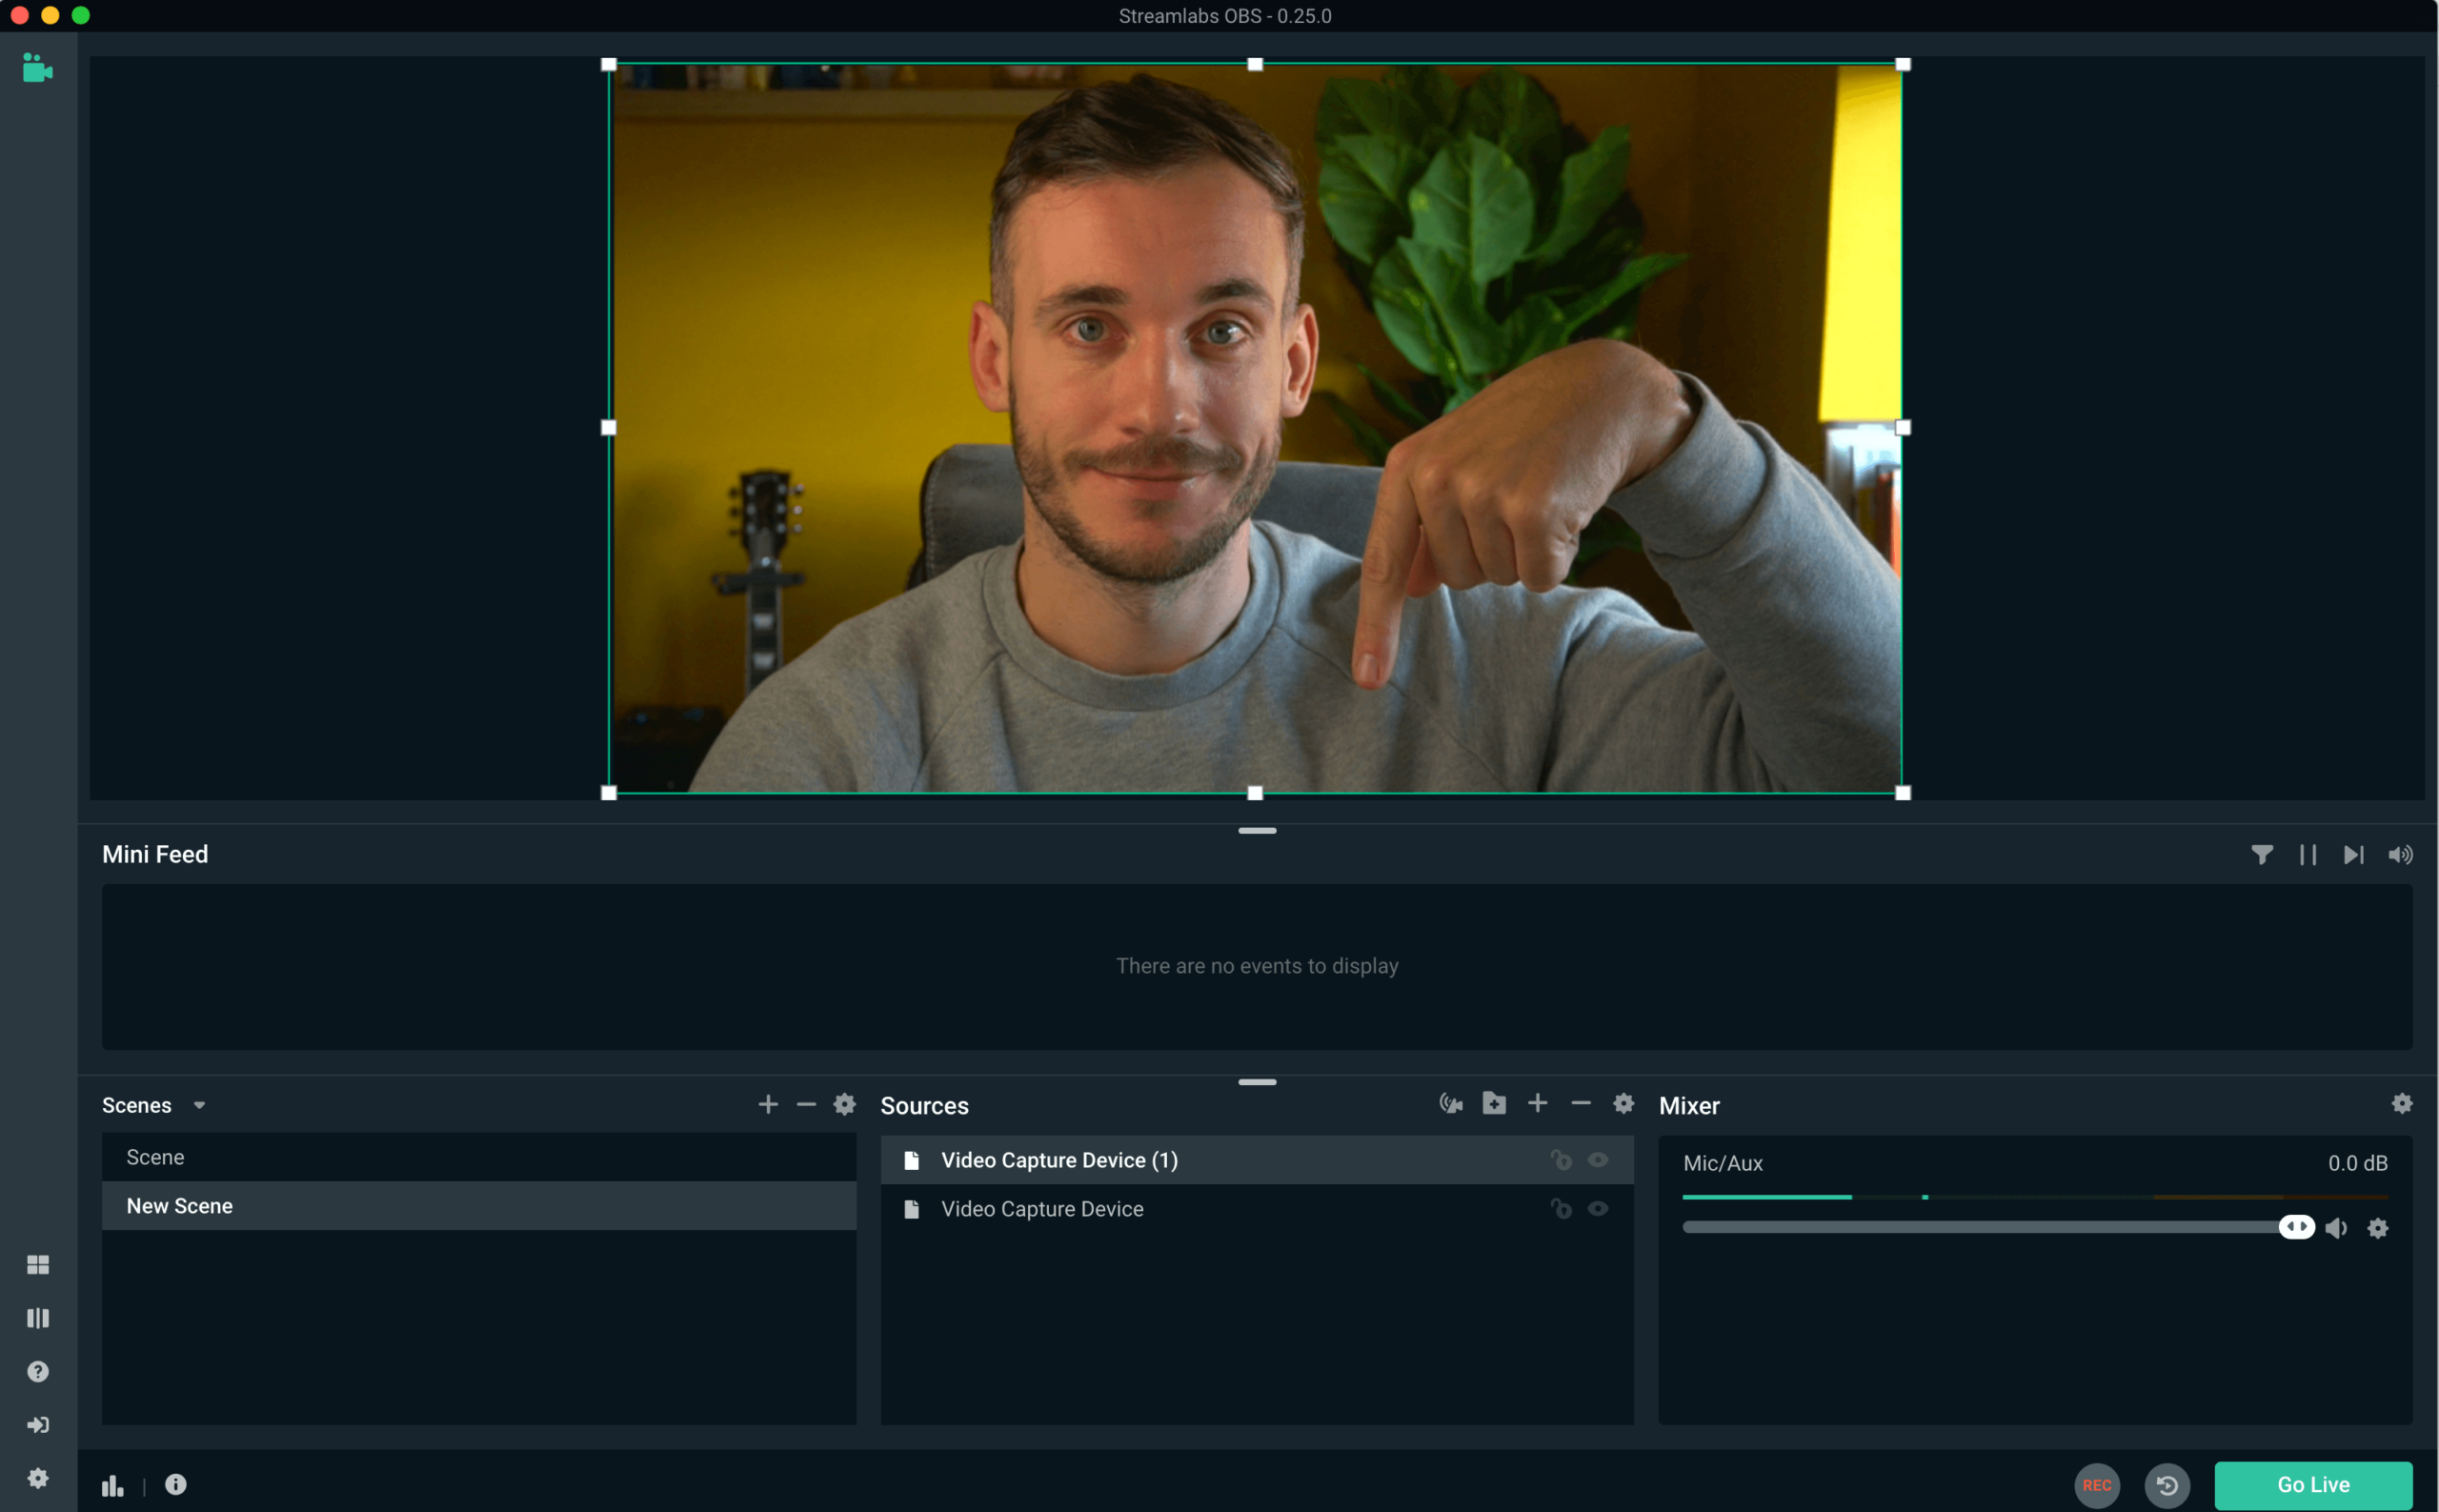 Streamlabs OBS - The best live streaming software for businesses